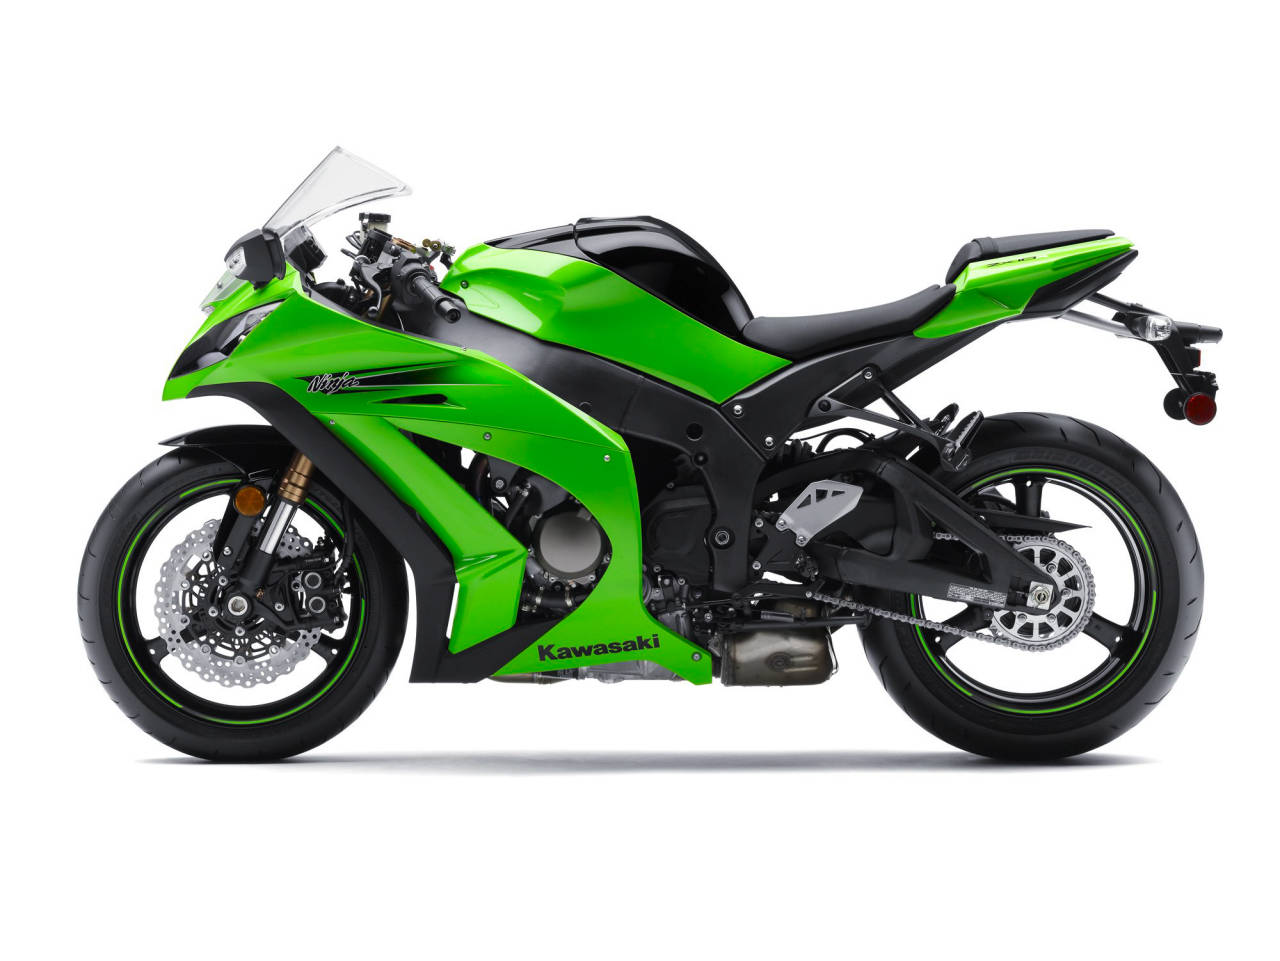 Zx10 Wiring Diagram Library Cool Sport Bike Stroke 2004 Zx10r Source 2011 Kawasaki Ninja Zx 10r 8